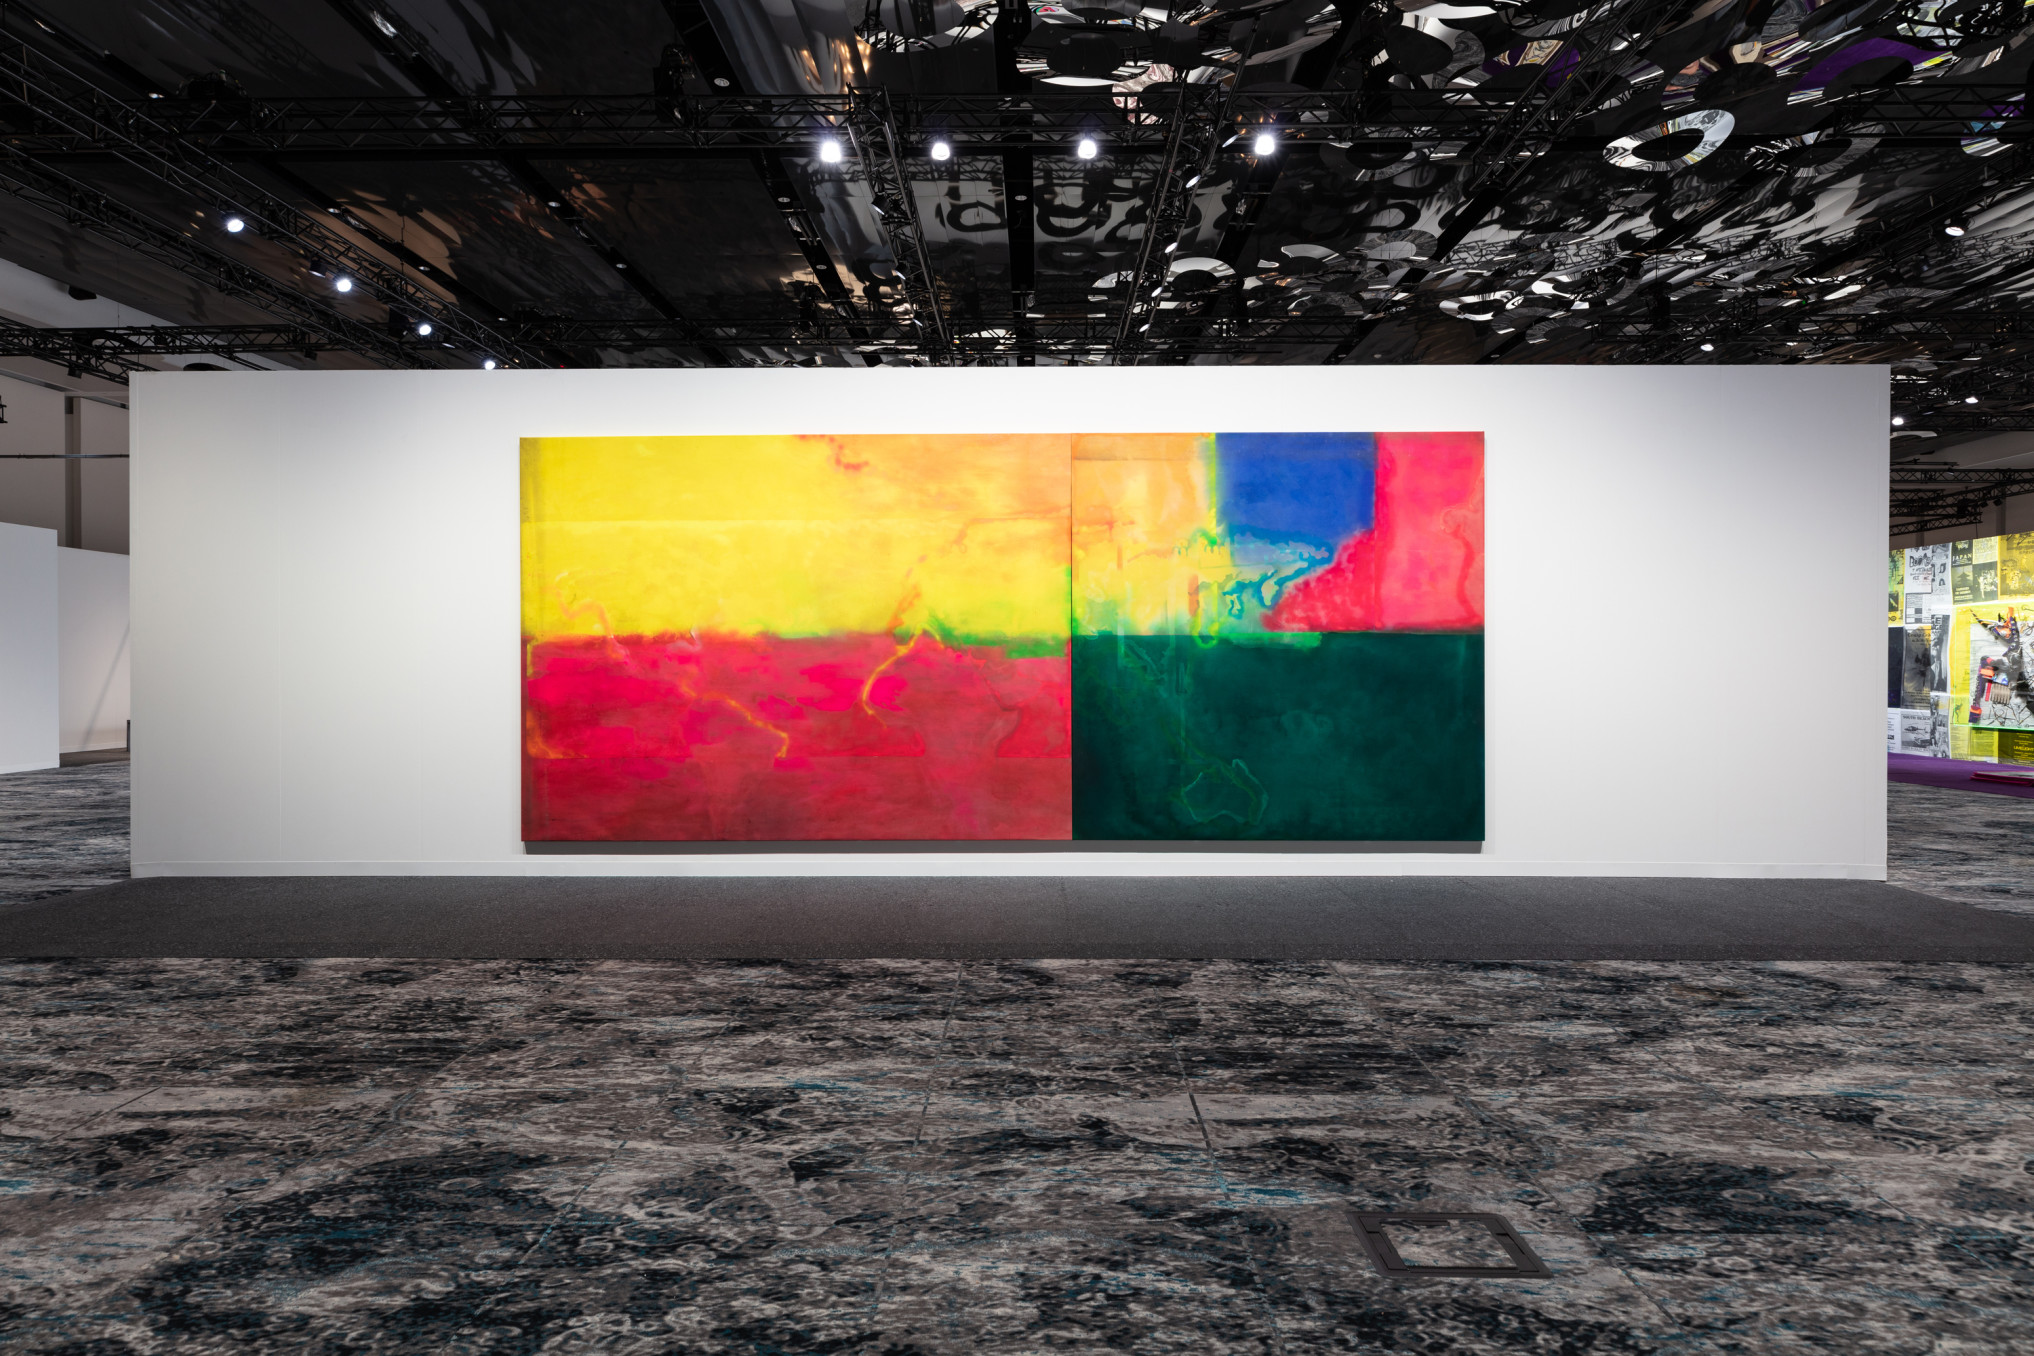 Frank Bowling, Installation view, Hales Gallery at Art Basel Miami Beach | Meridians, 4 - 8 December 2019